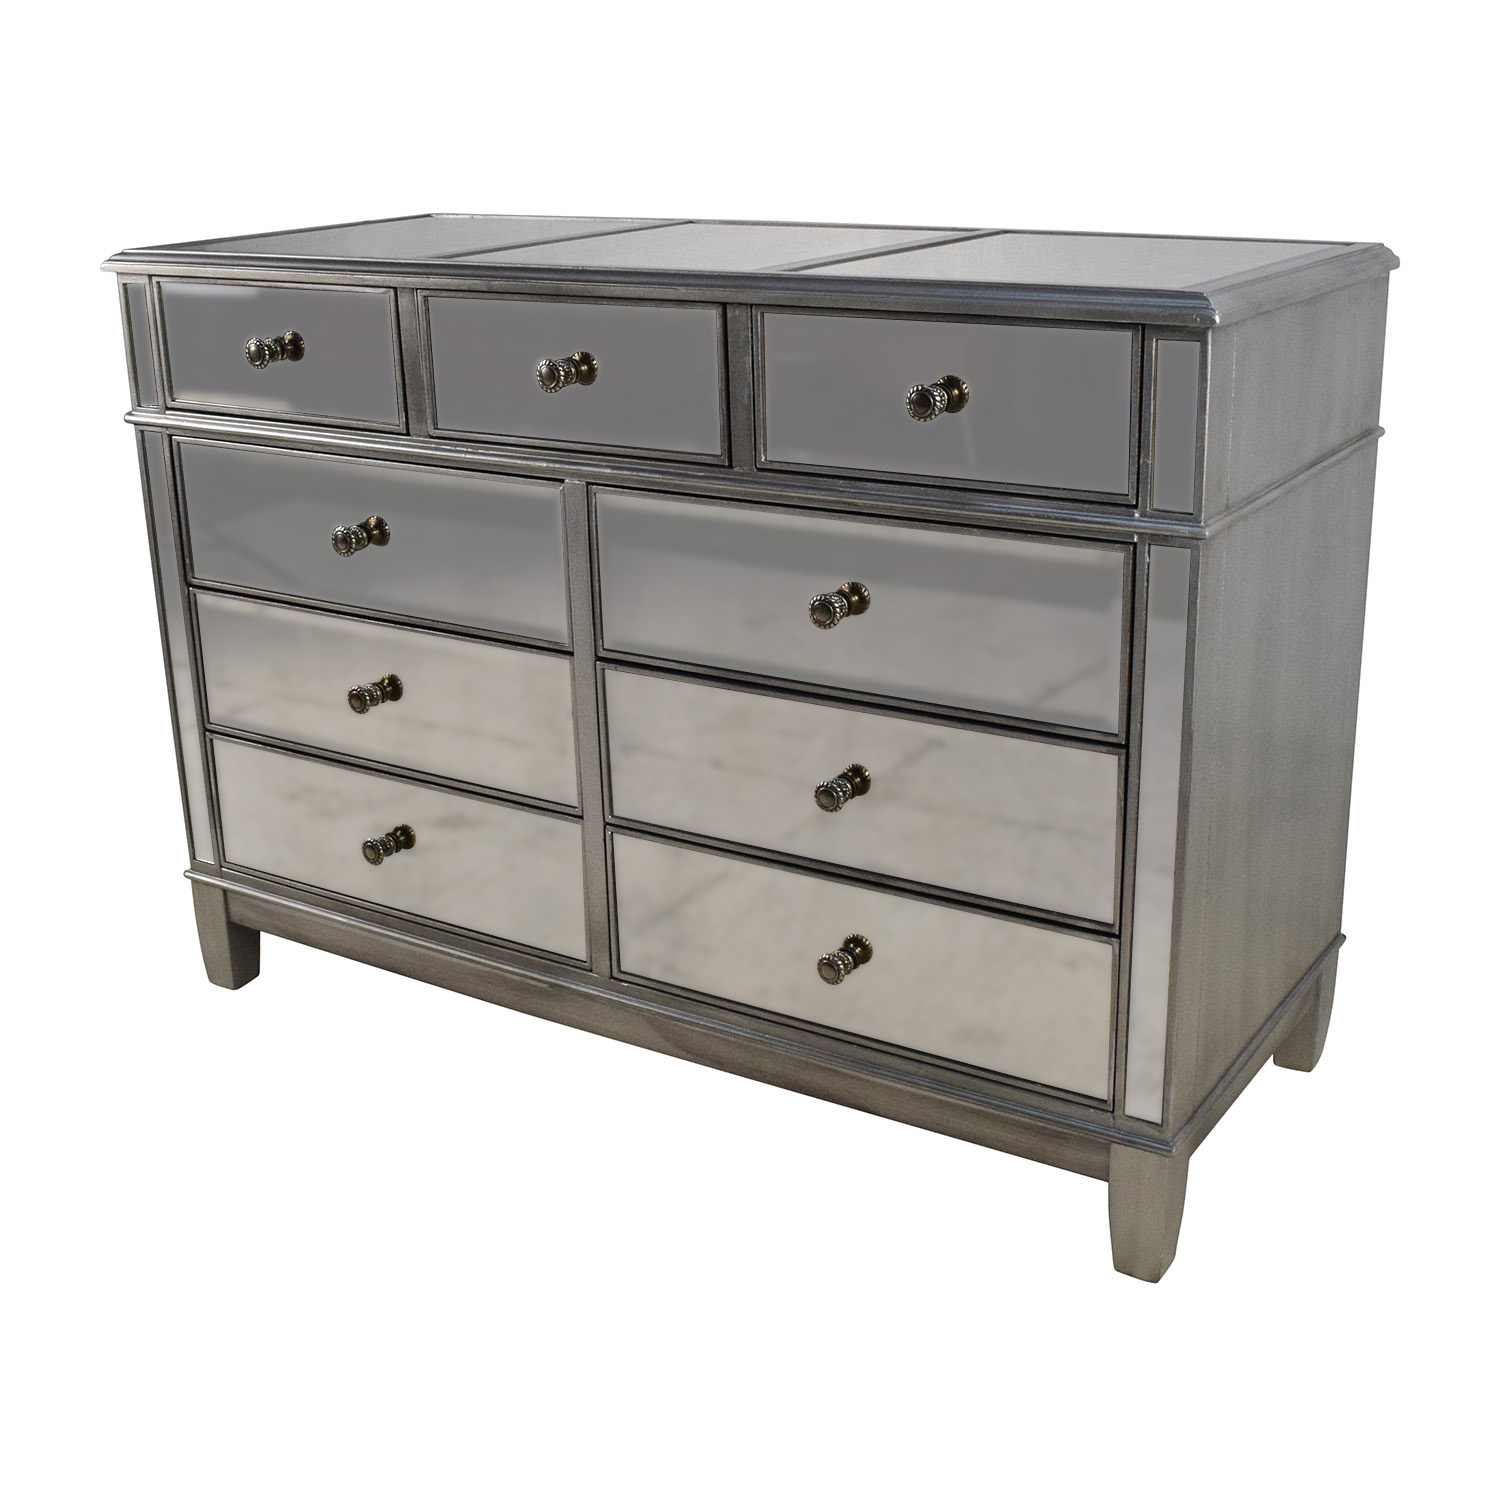 Pier One Bedroom Dressers Hayworth Mirrored Dresser Bestdressers 2017